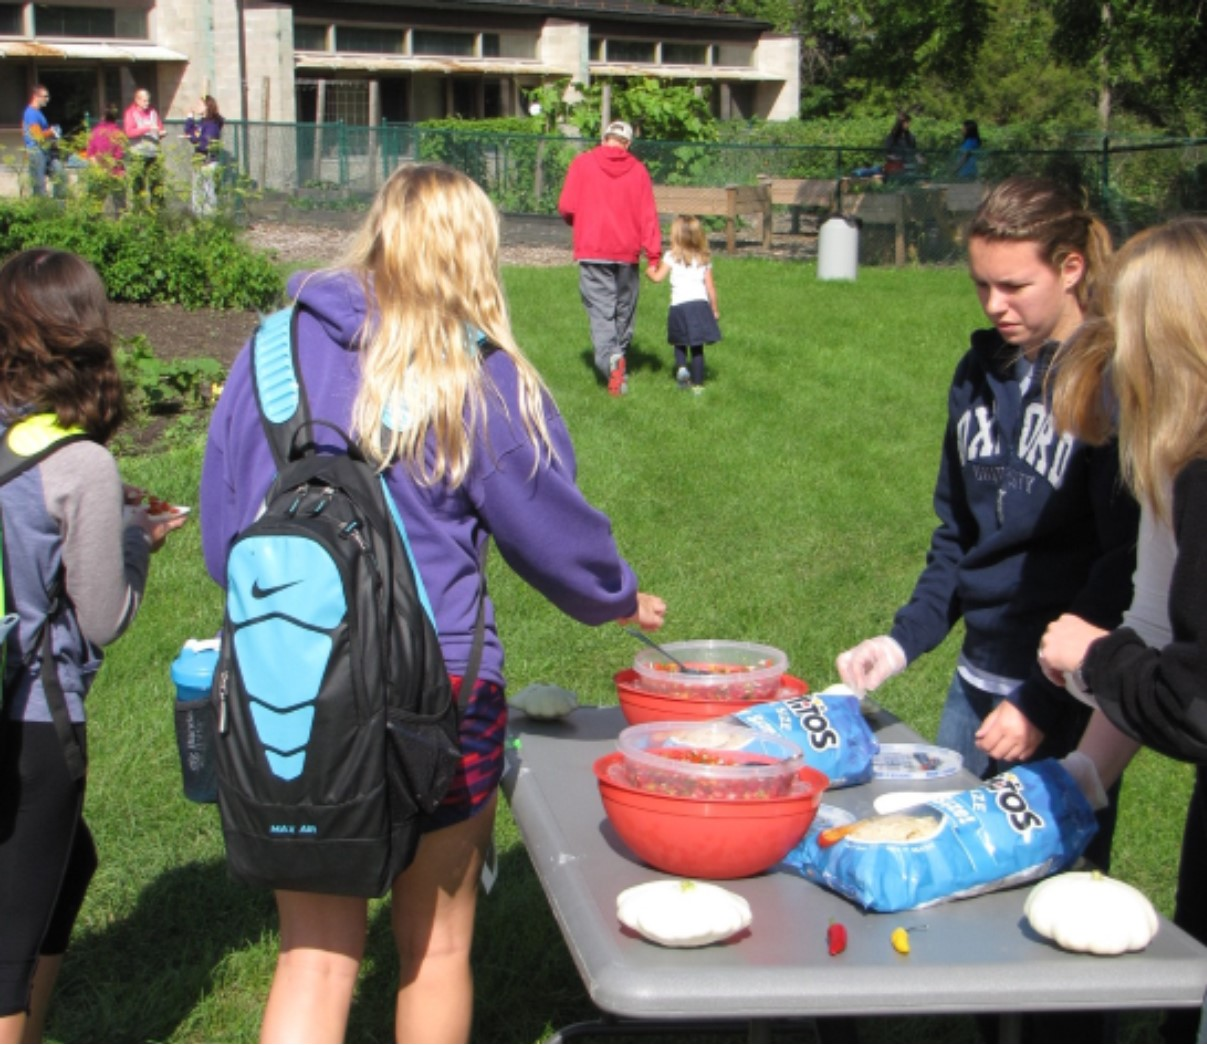 Students eating Salsa at the Salsa Festival